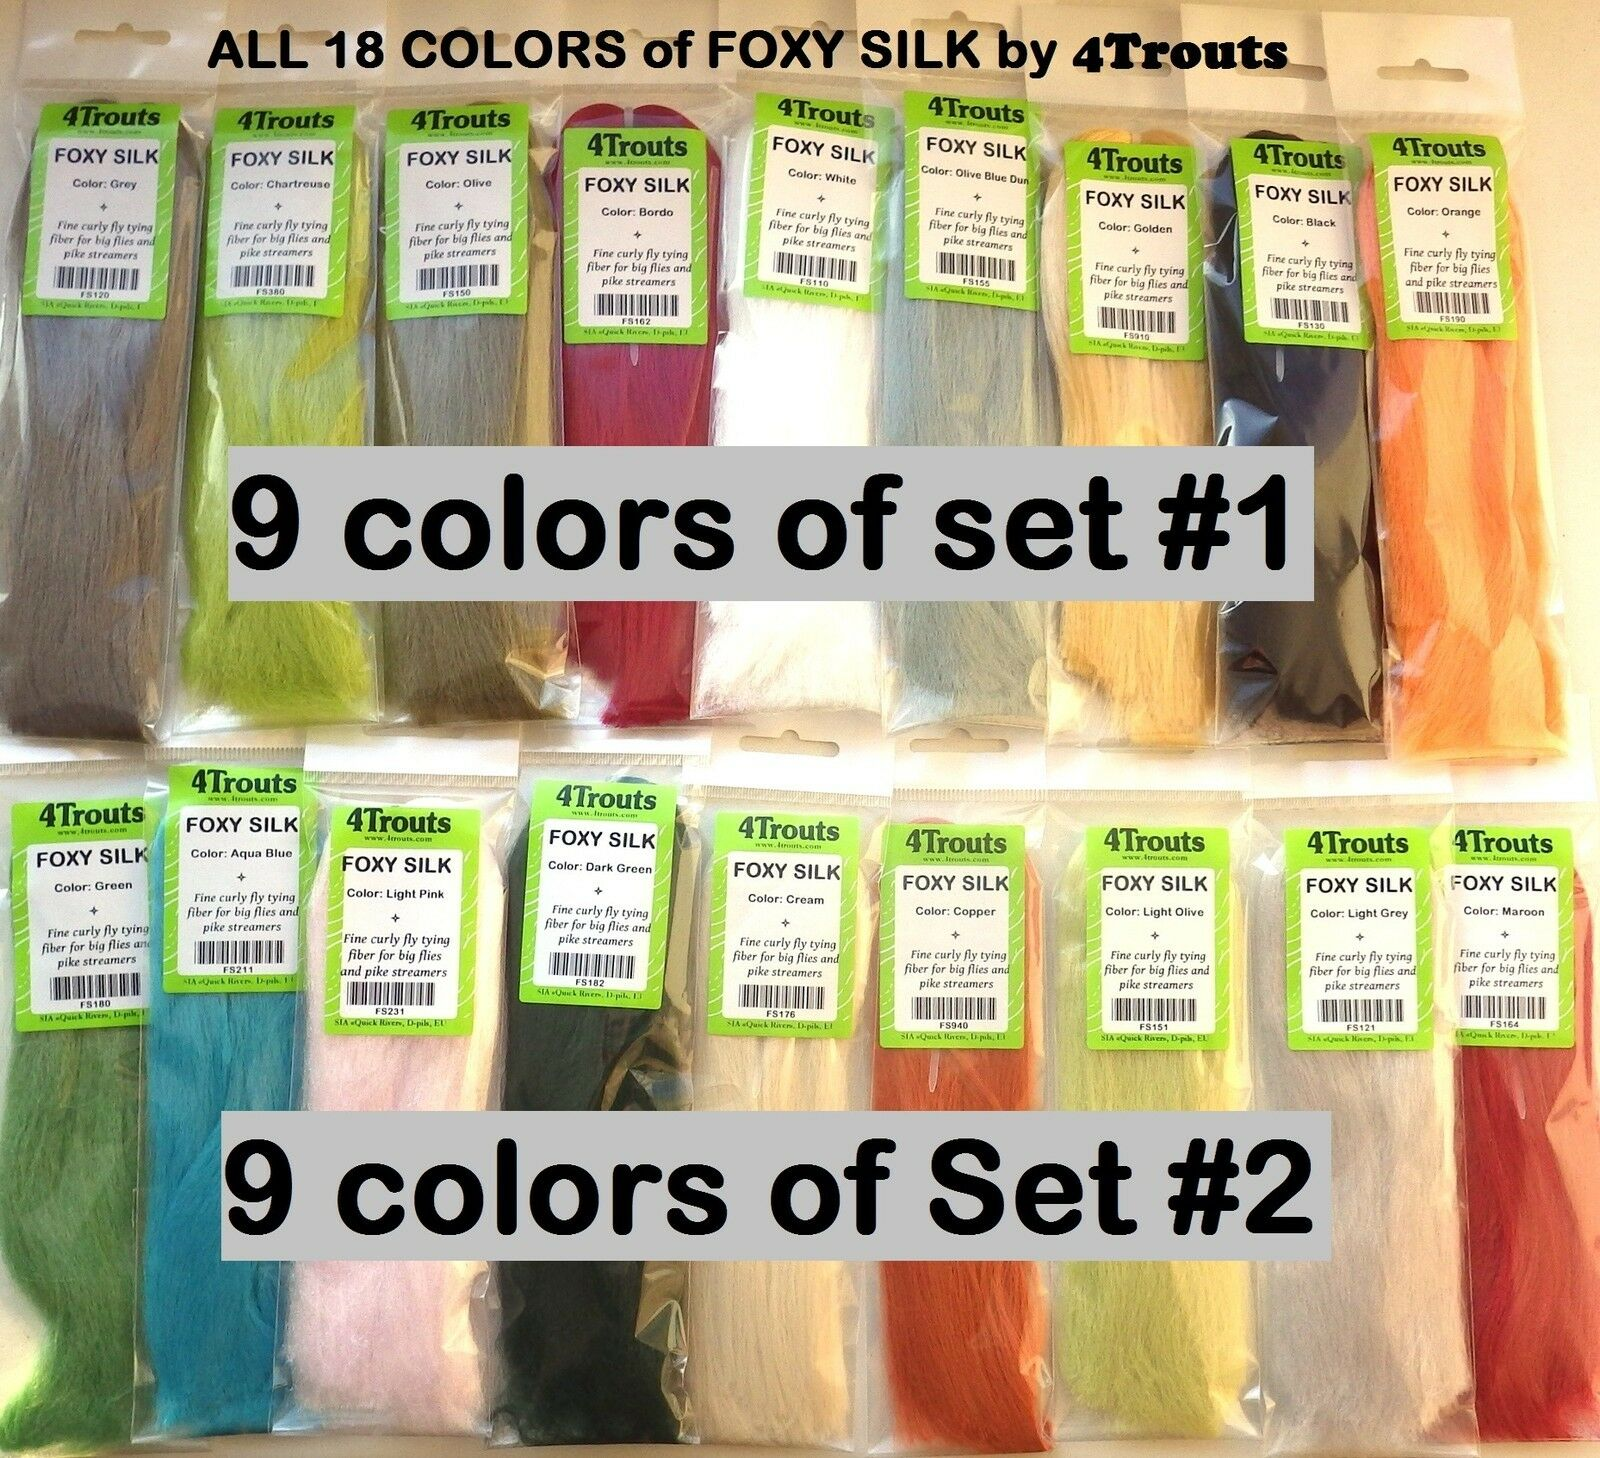 Synthetic Fibre FOXY SILK 4Trouts ALL COLORS  Fly Tying Set of 18 colors  we take customers as our god